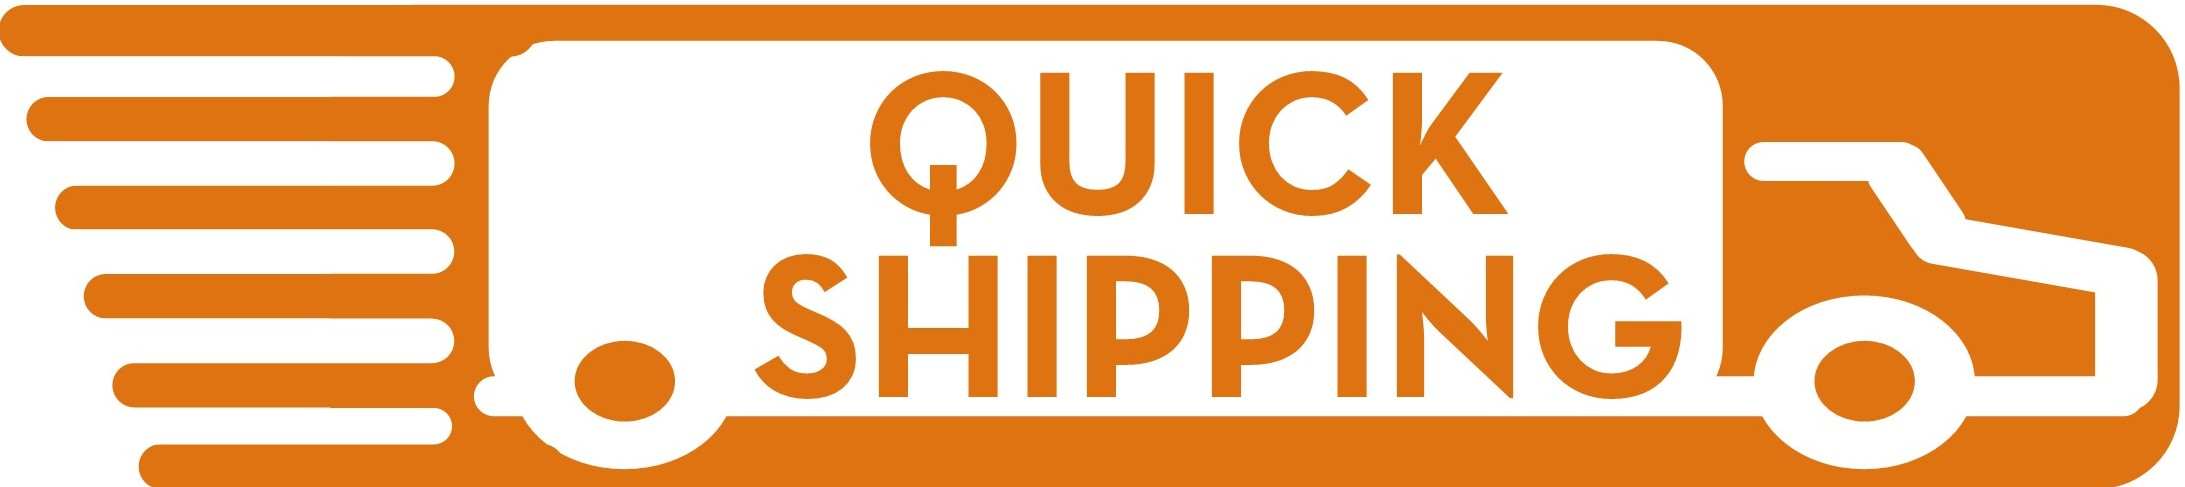 quick-shipping-banner-icon.jpg